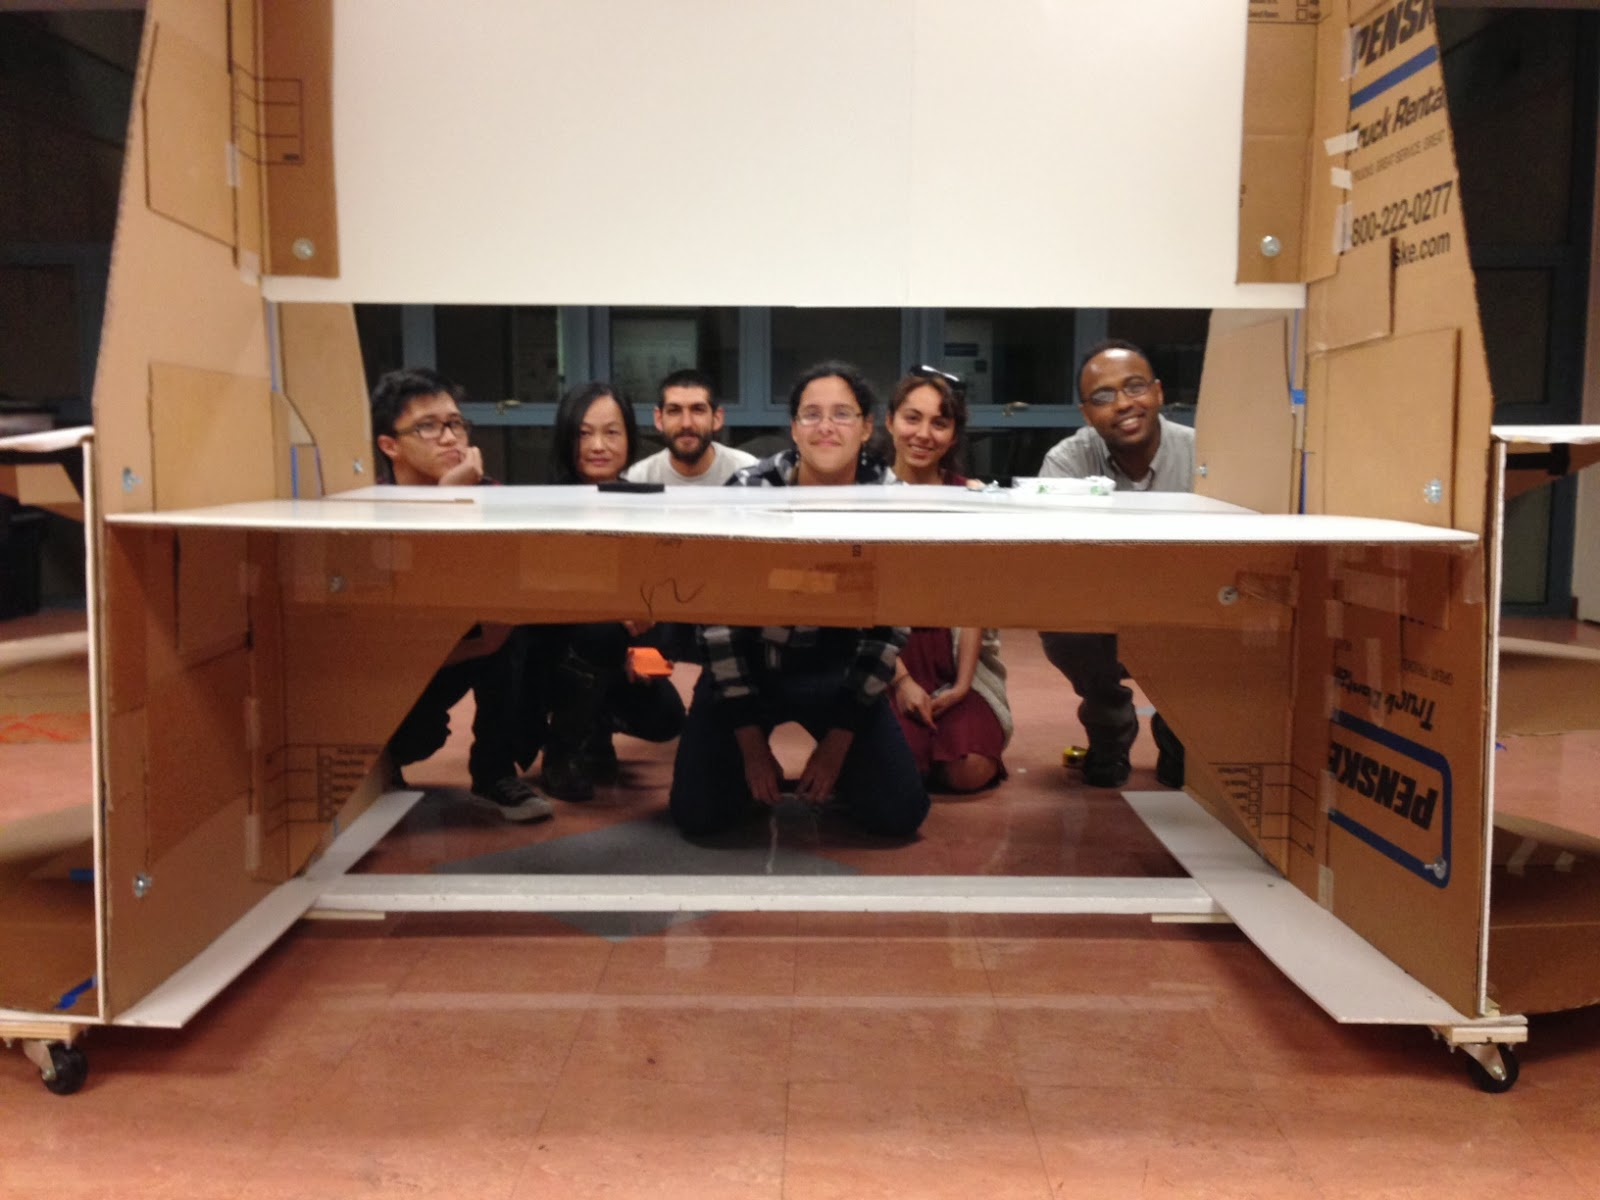 Image shows an opening in the full-scale cardboard prototype with students kneeling and peering through as the picture was taken.